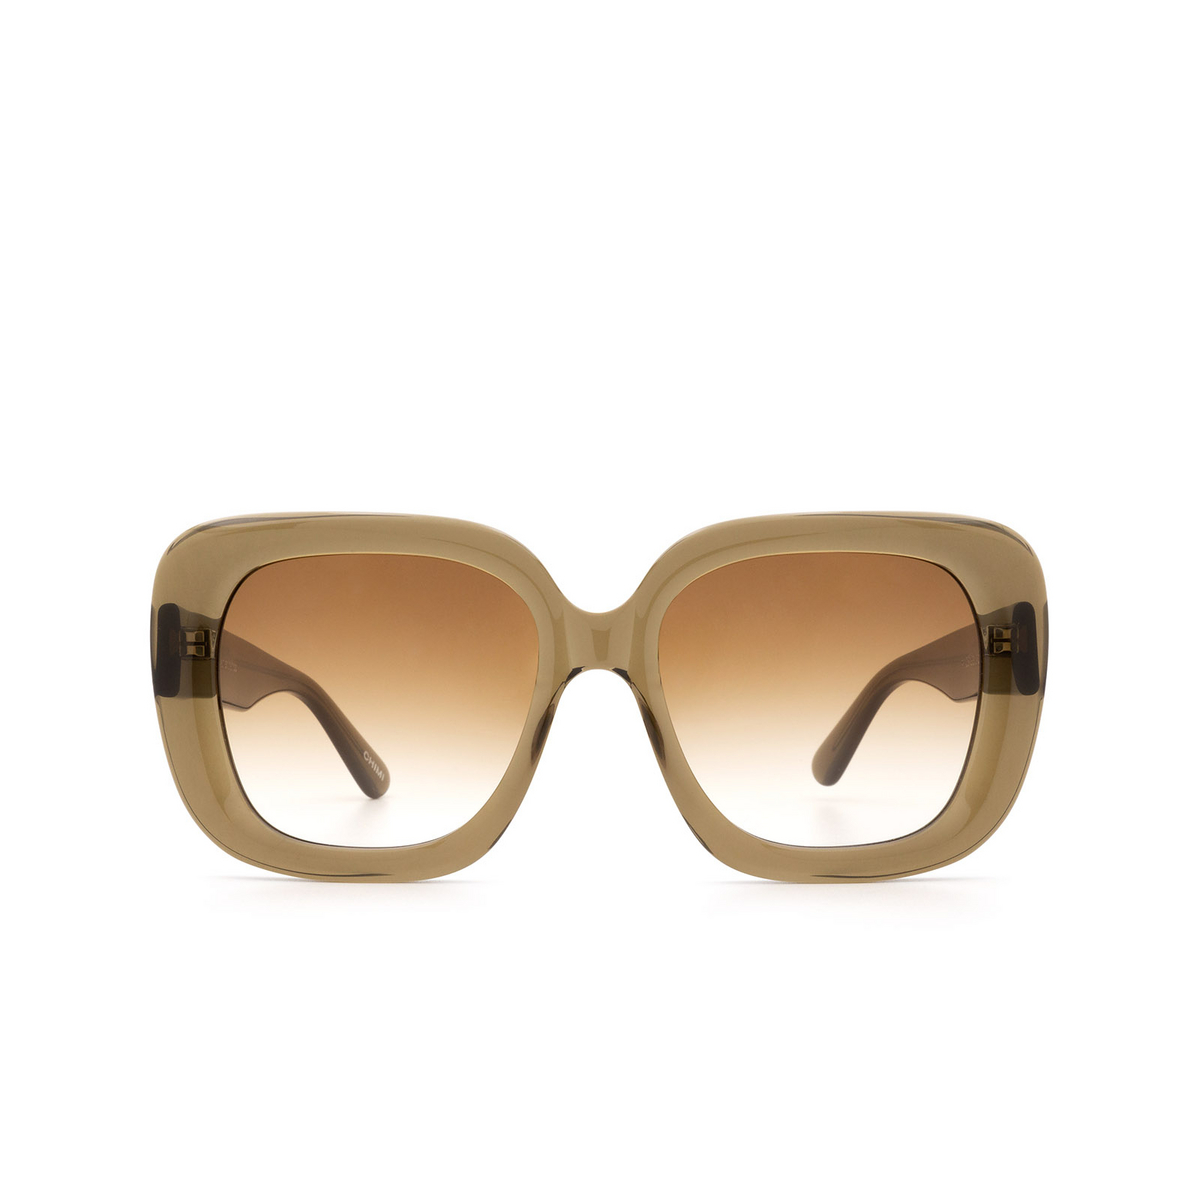 Chimi® Square Sunglasses: #108 color Olive Green Green - front view.